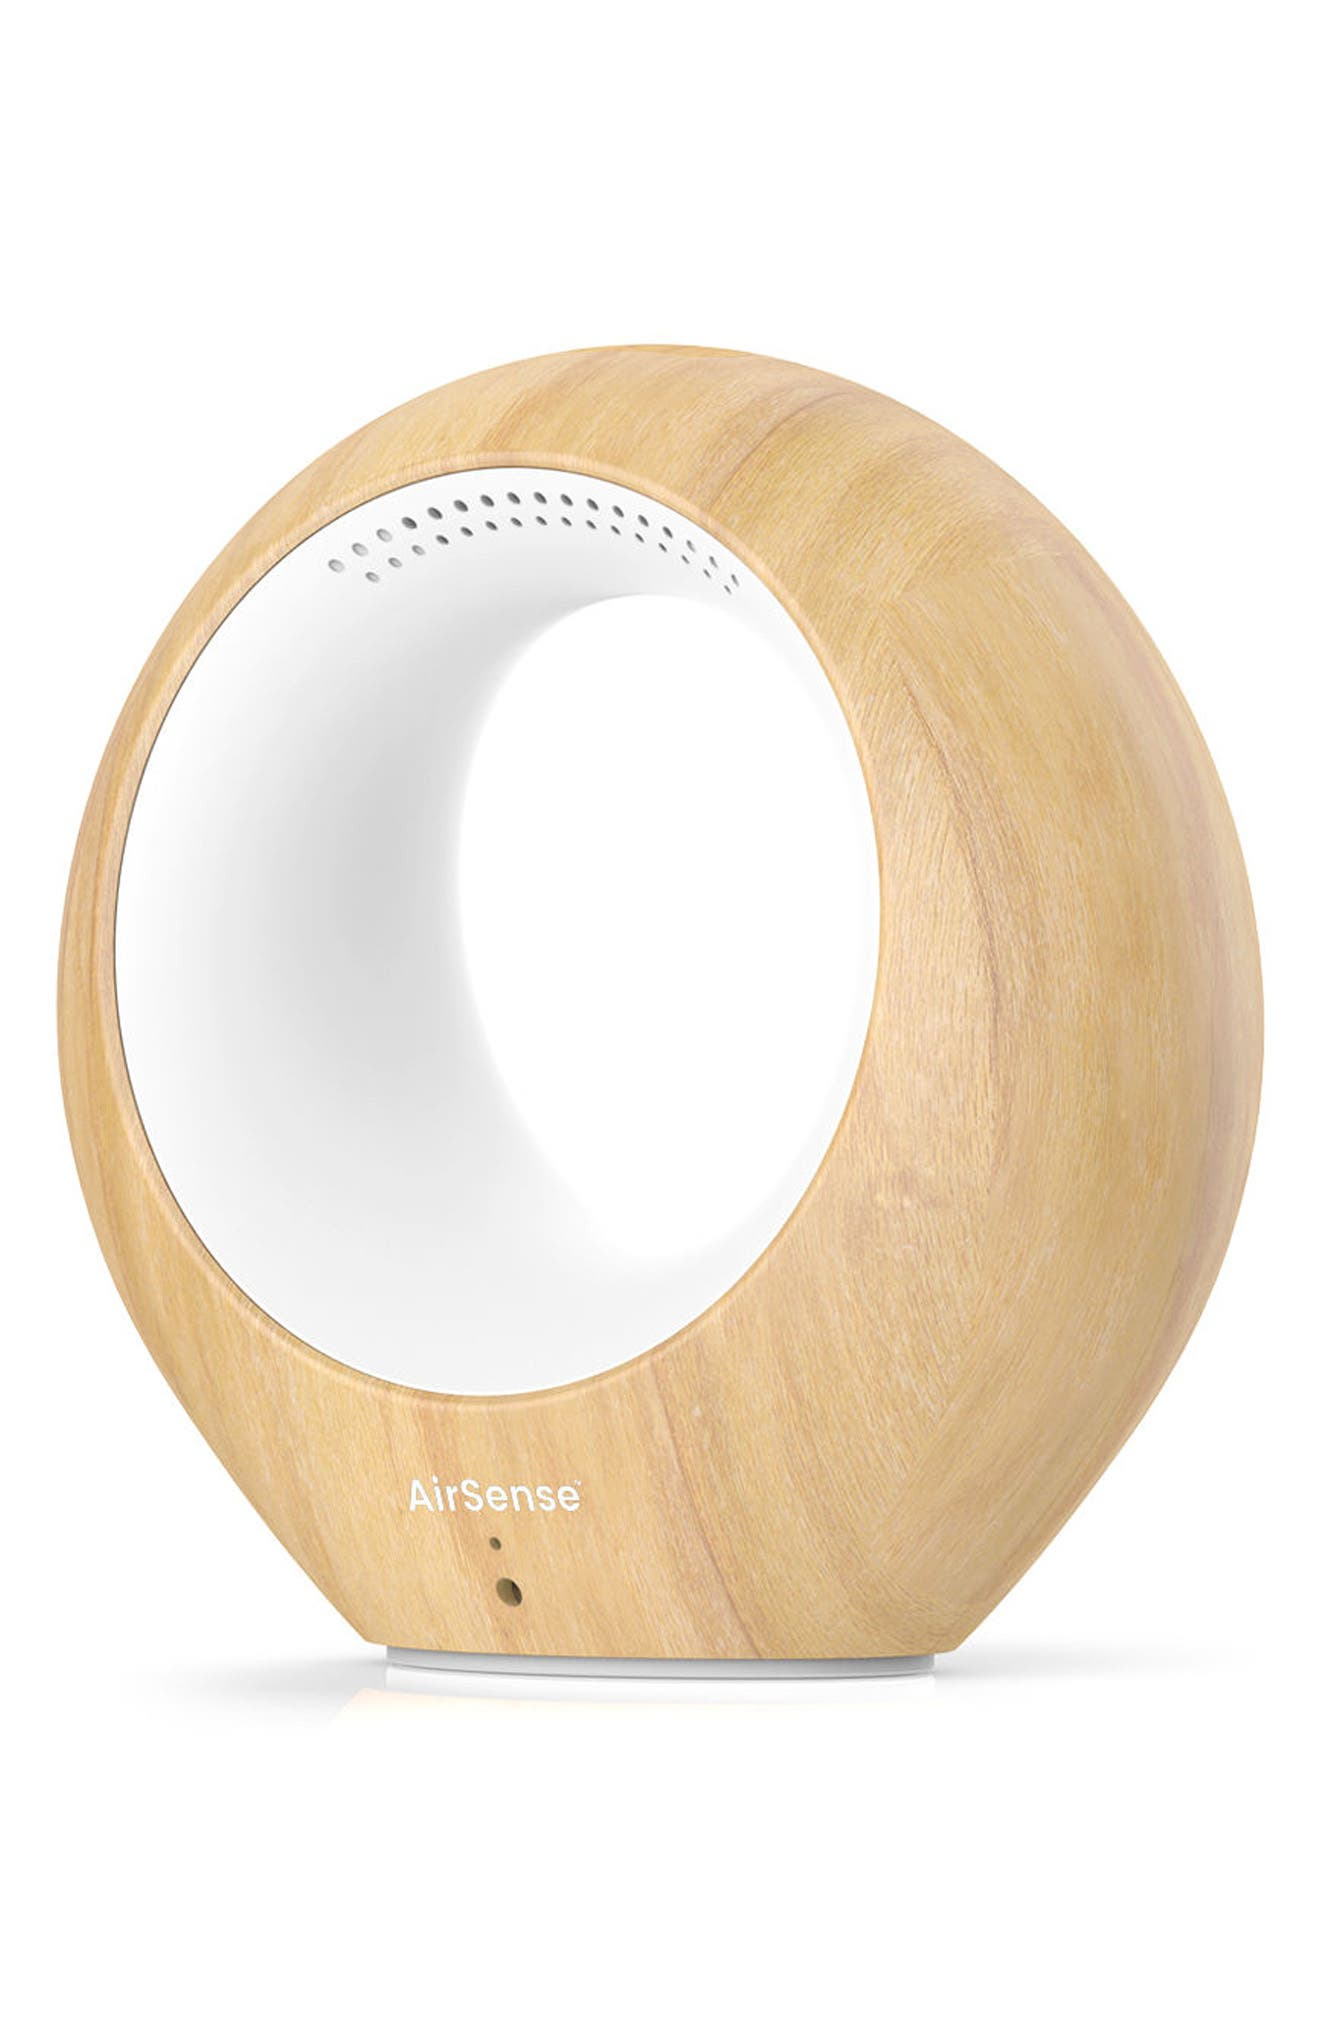 Infant Ibaby Airsense Air Purifier